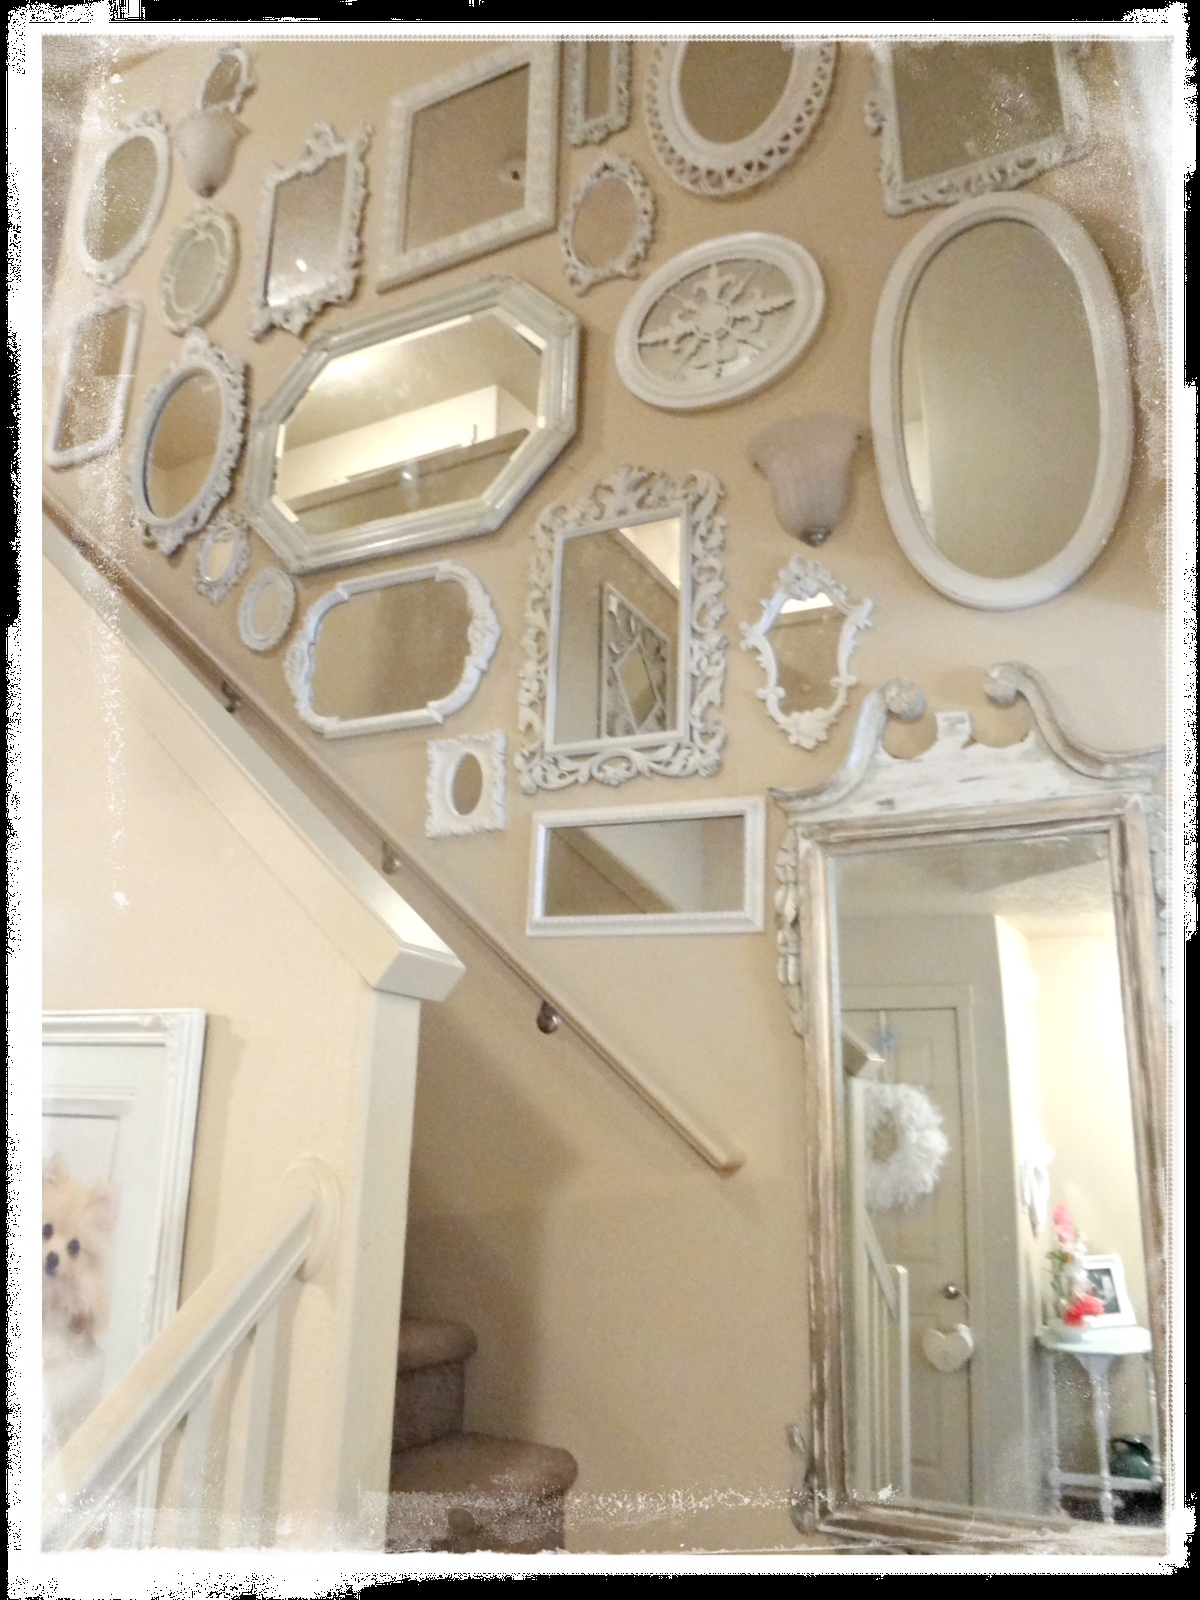 Not So Shab Shab Chic Mirrors Flowers Fur Babies Within Shabby Chic Wall Mirrors (Image 9 of 15)